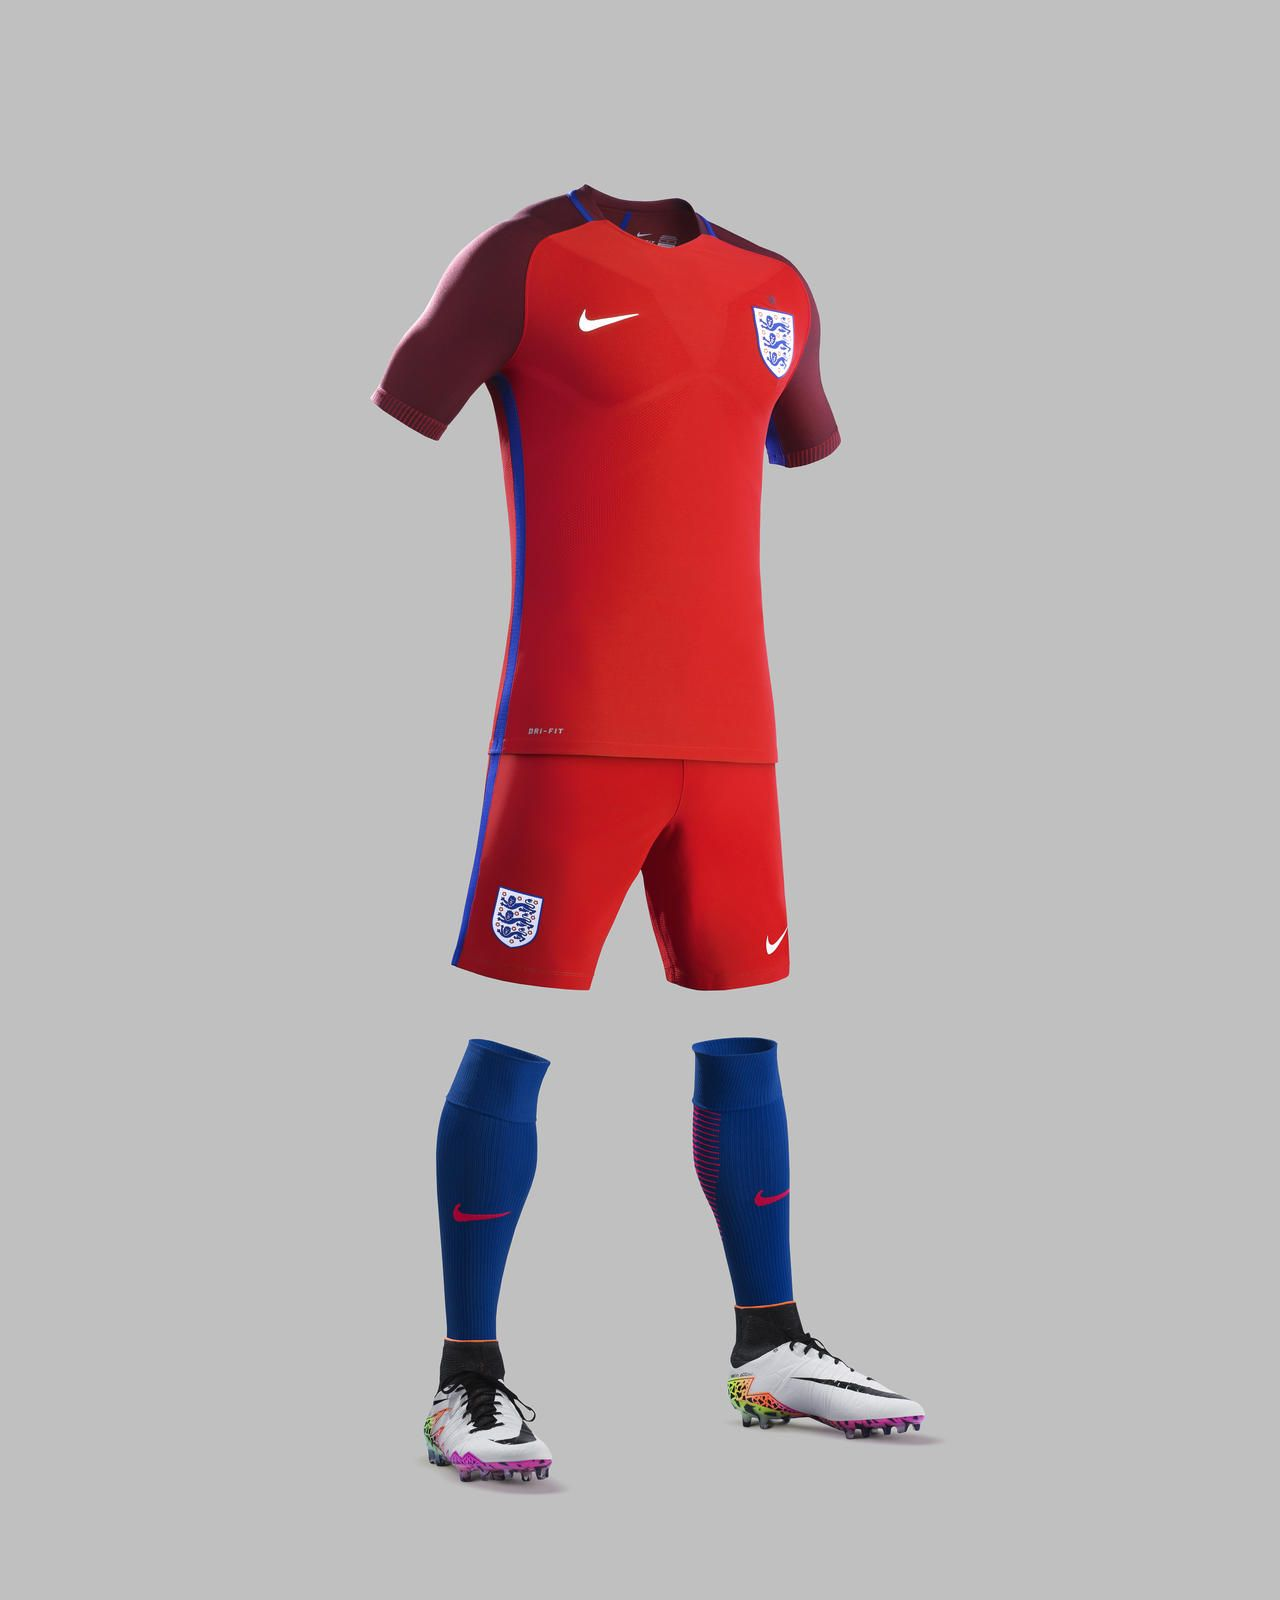 England 'Euro 2016' Nike Away Shirt - Football Shirts News